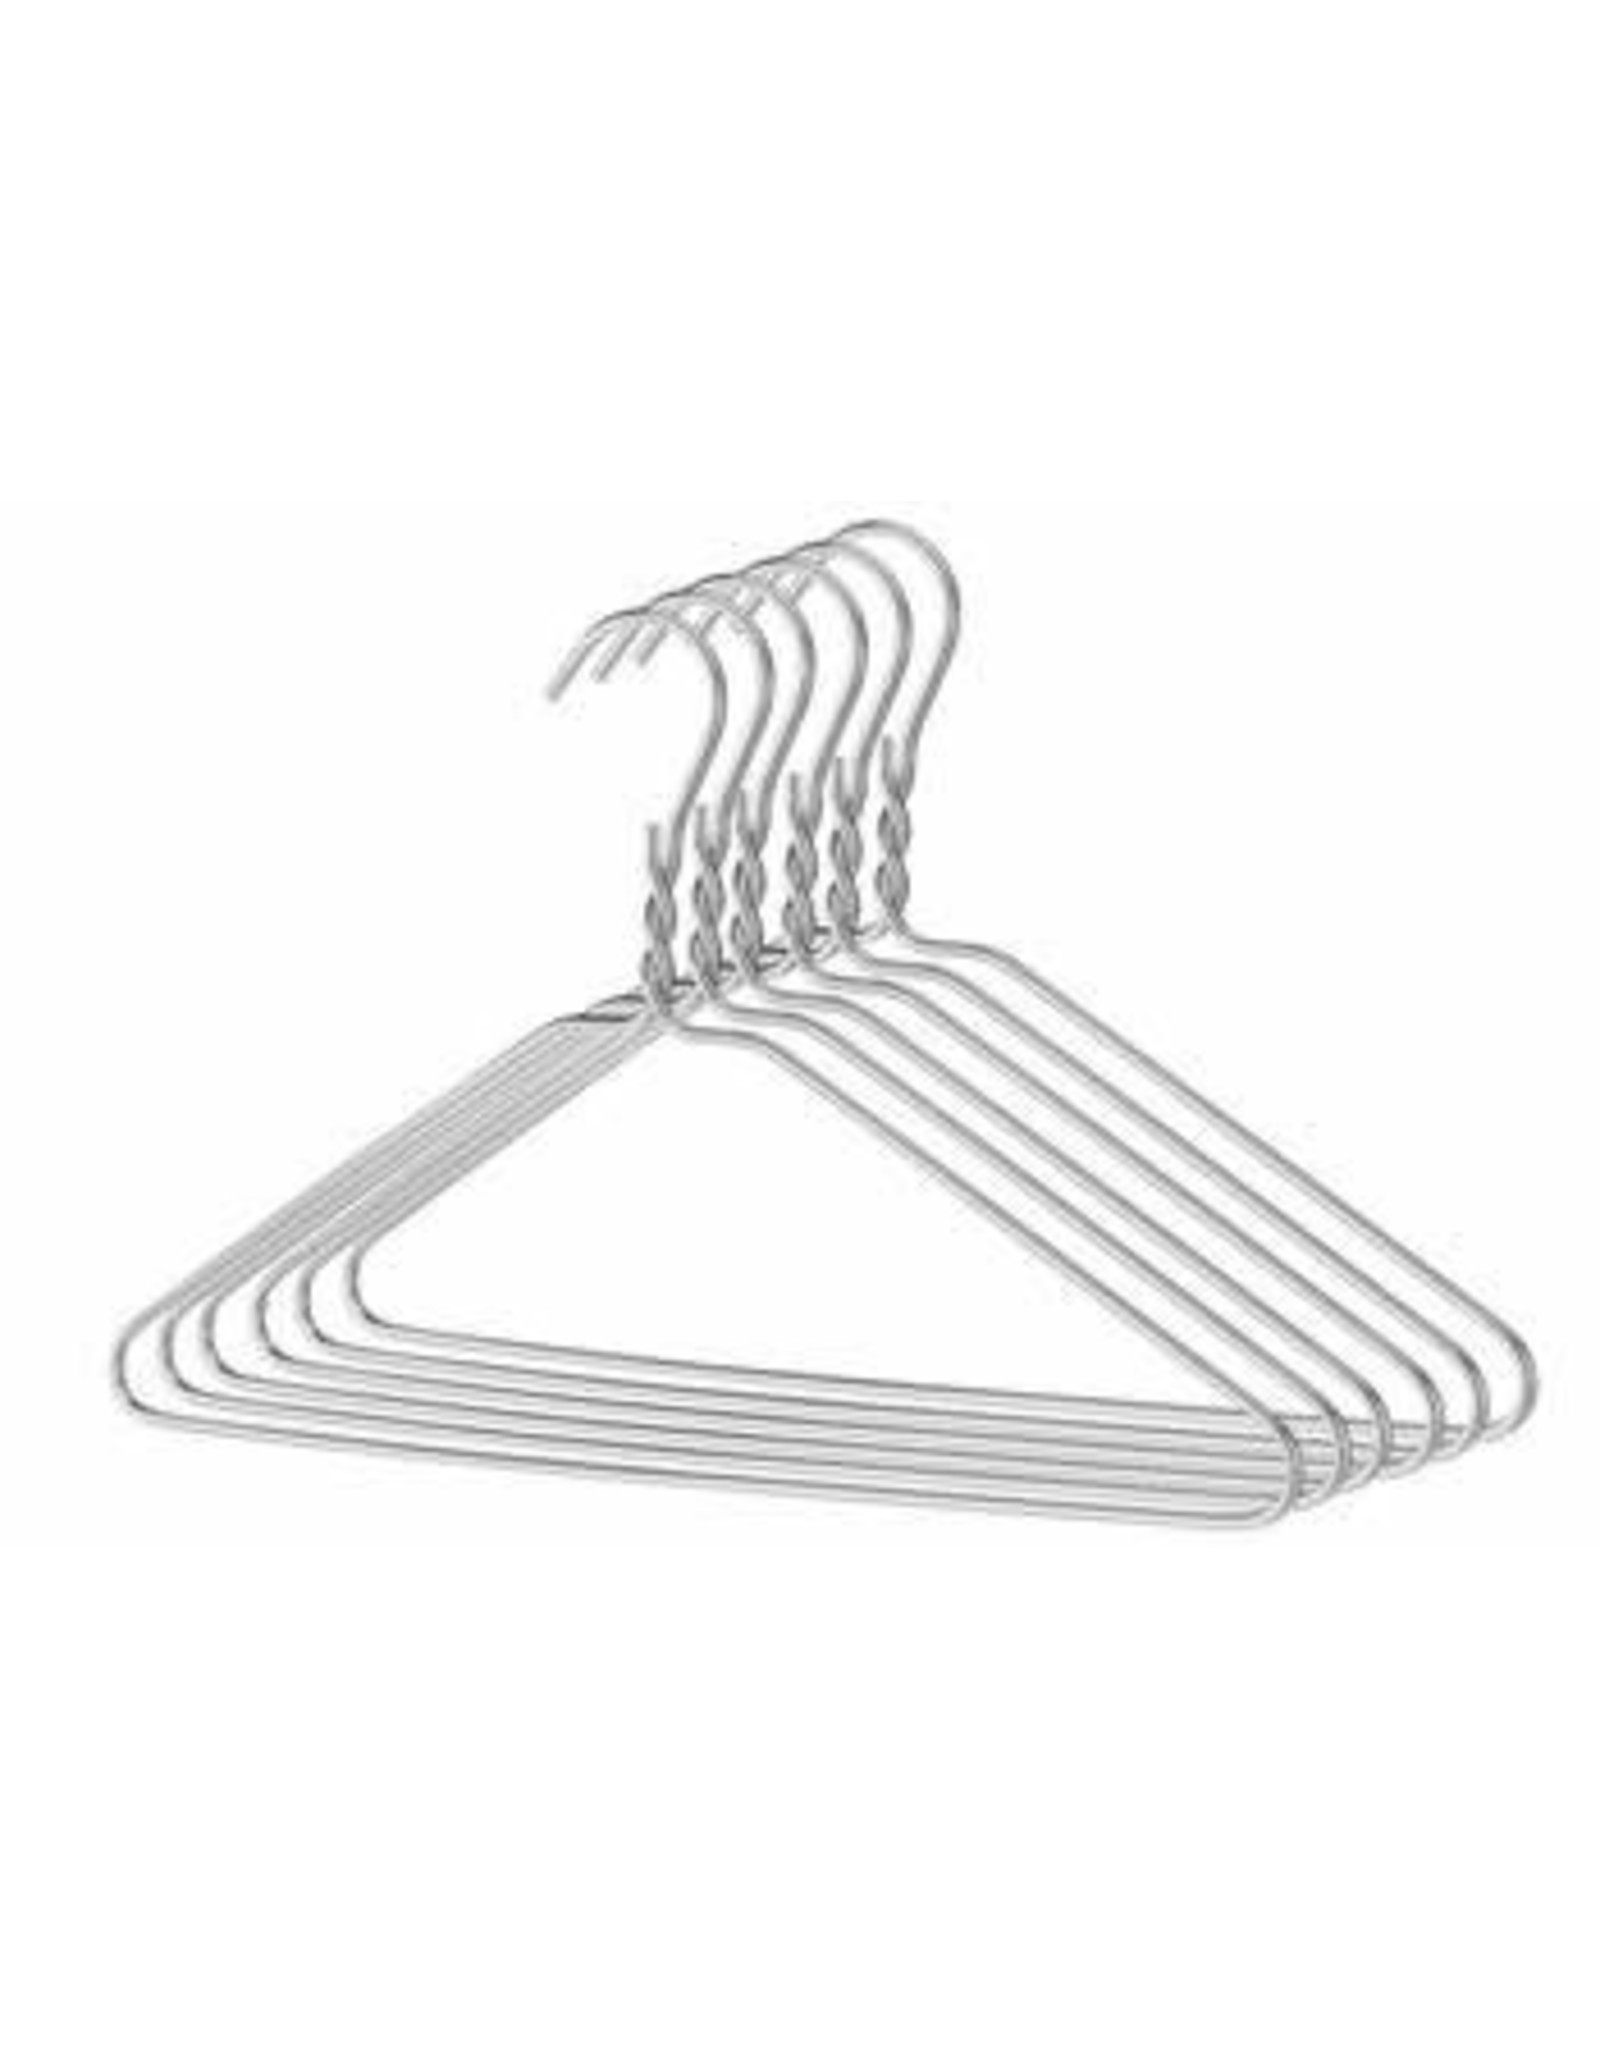 10 Pc Quality Silver Hangers